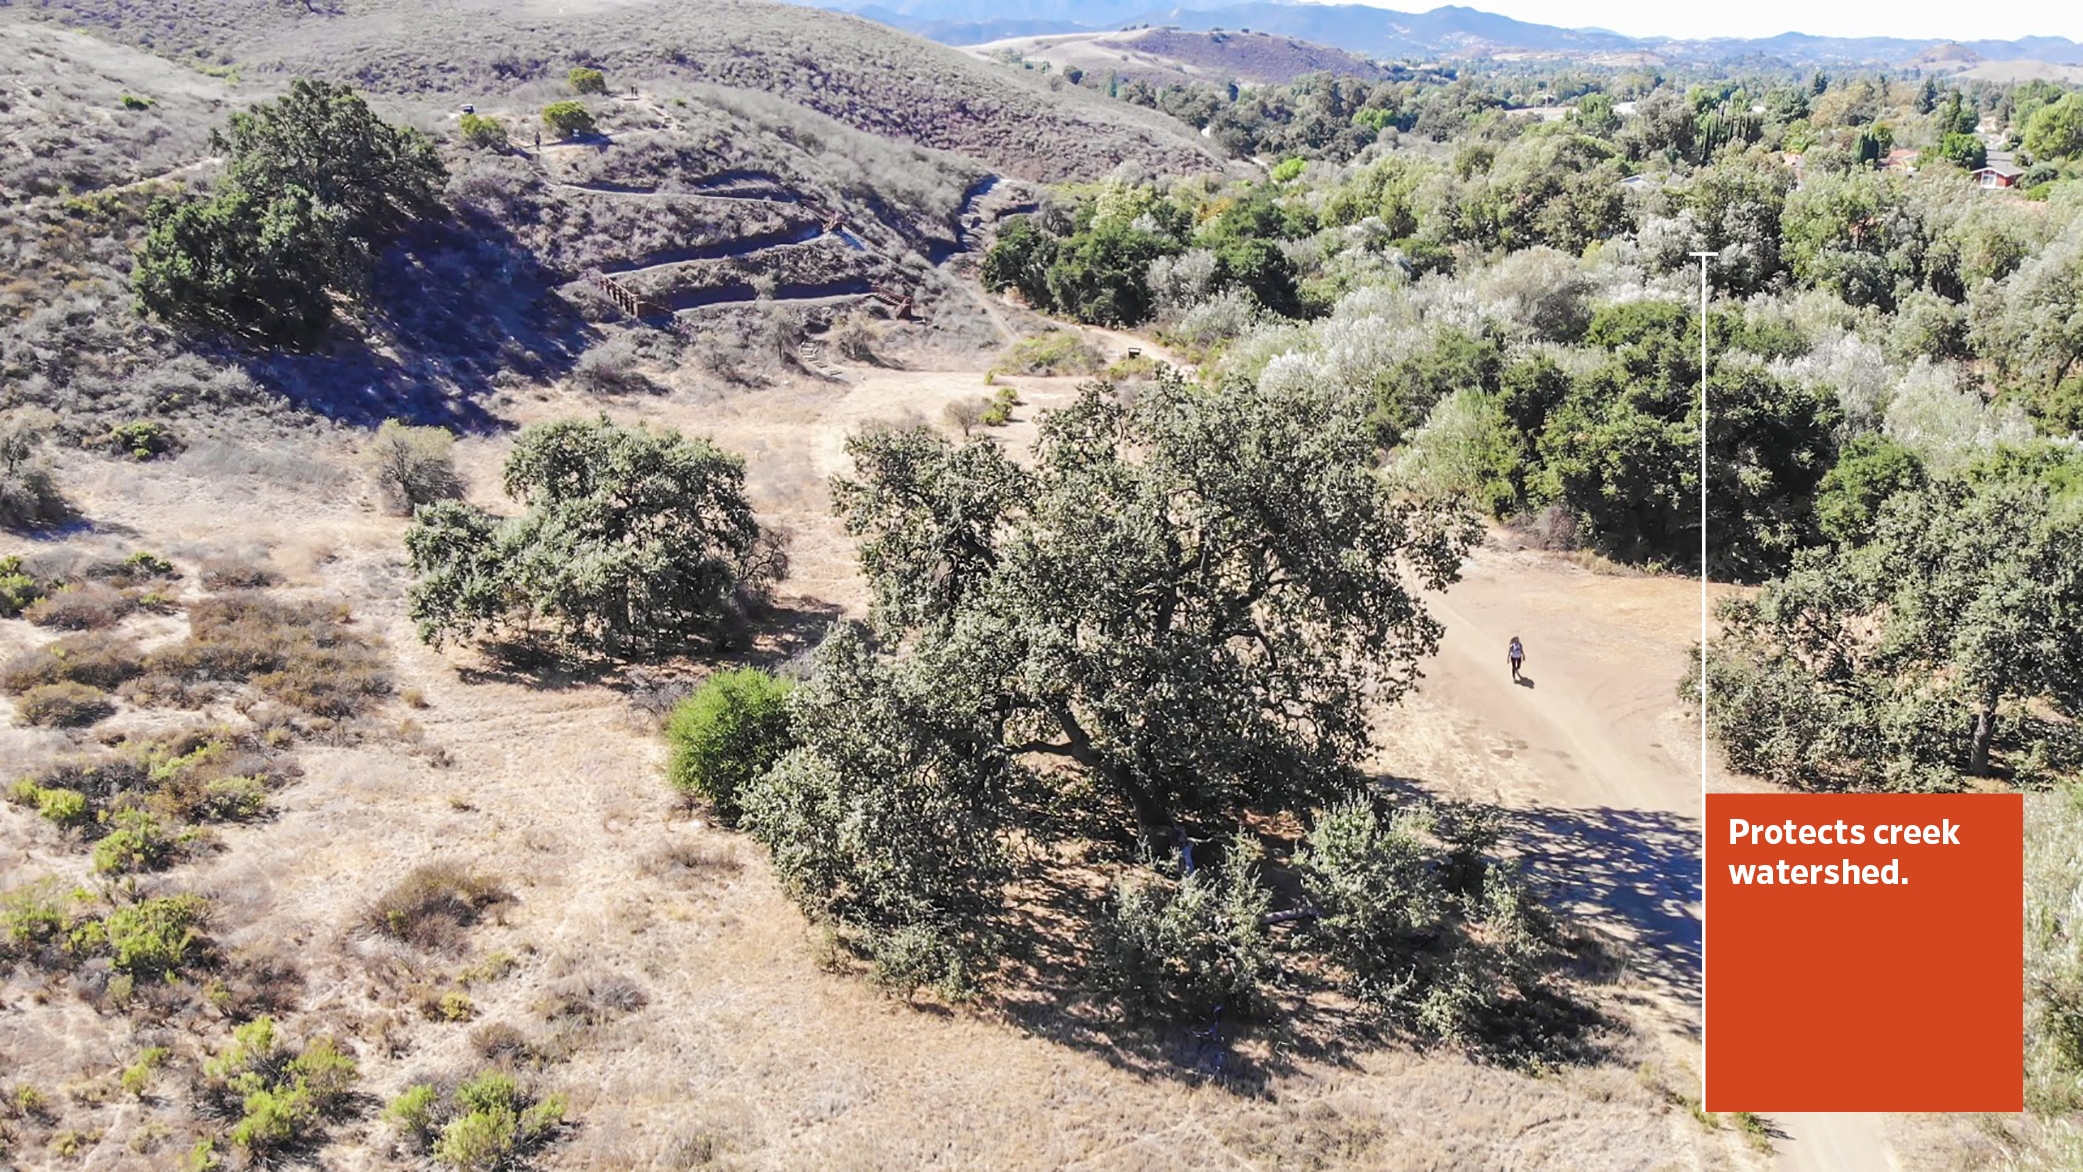 The Sapwi Trails Community Park preserves the beautiful native landscape of Calfornia, seen here, including native oak trees and other shrubs and plants.